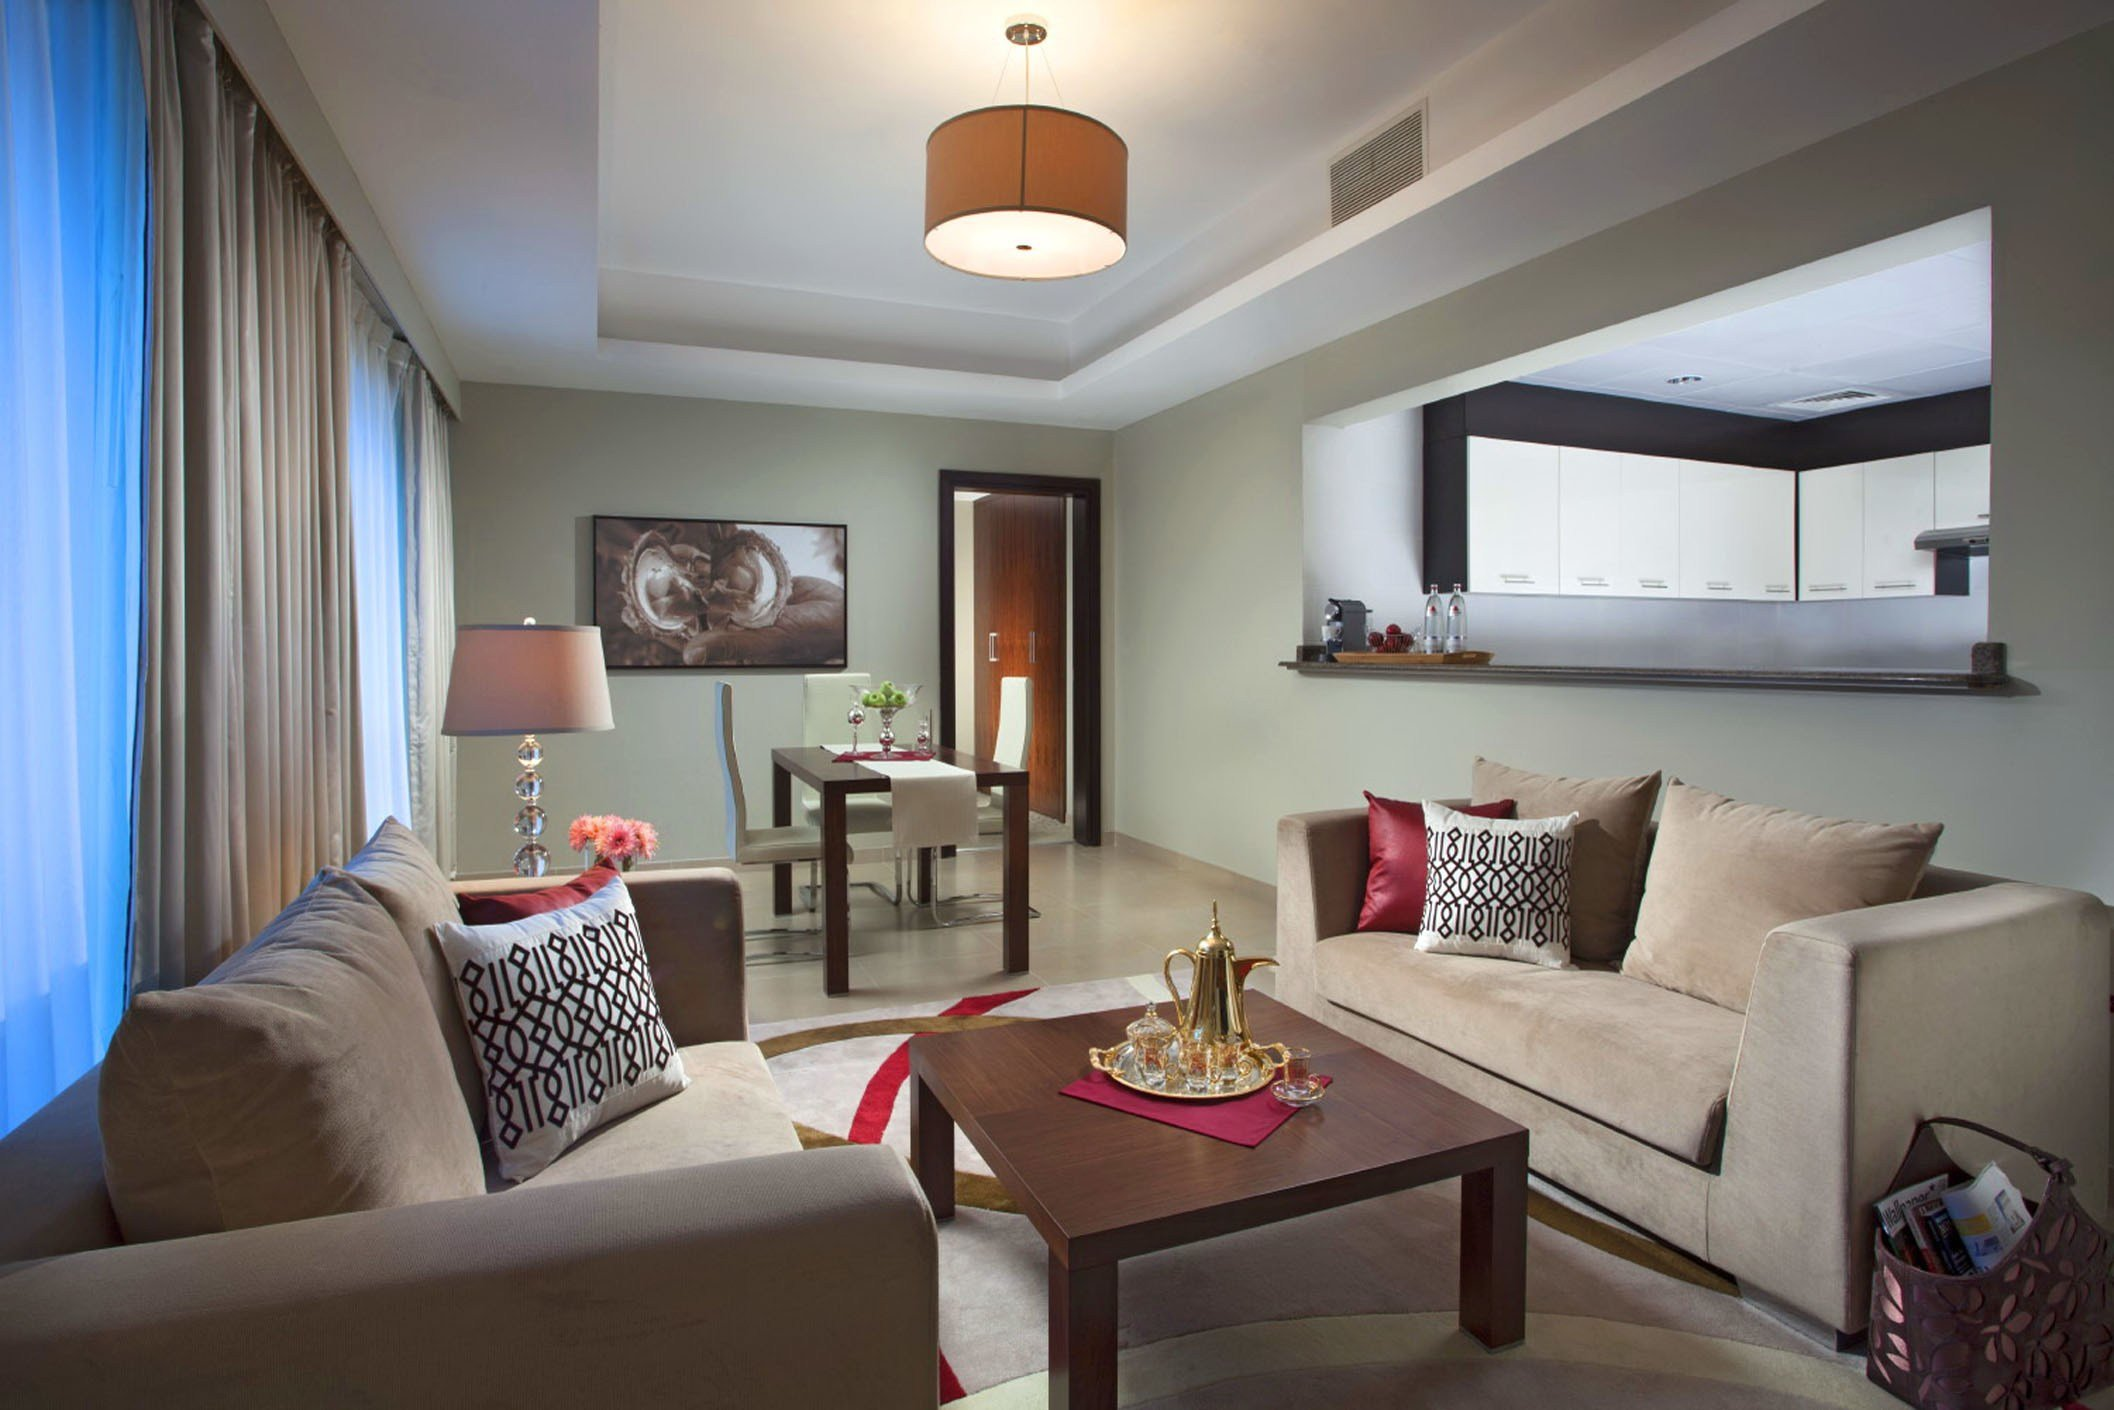 Best Qatar Real Estate Flats In Qatar Apartments In Qatar With Pictures